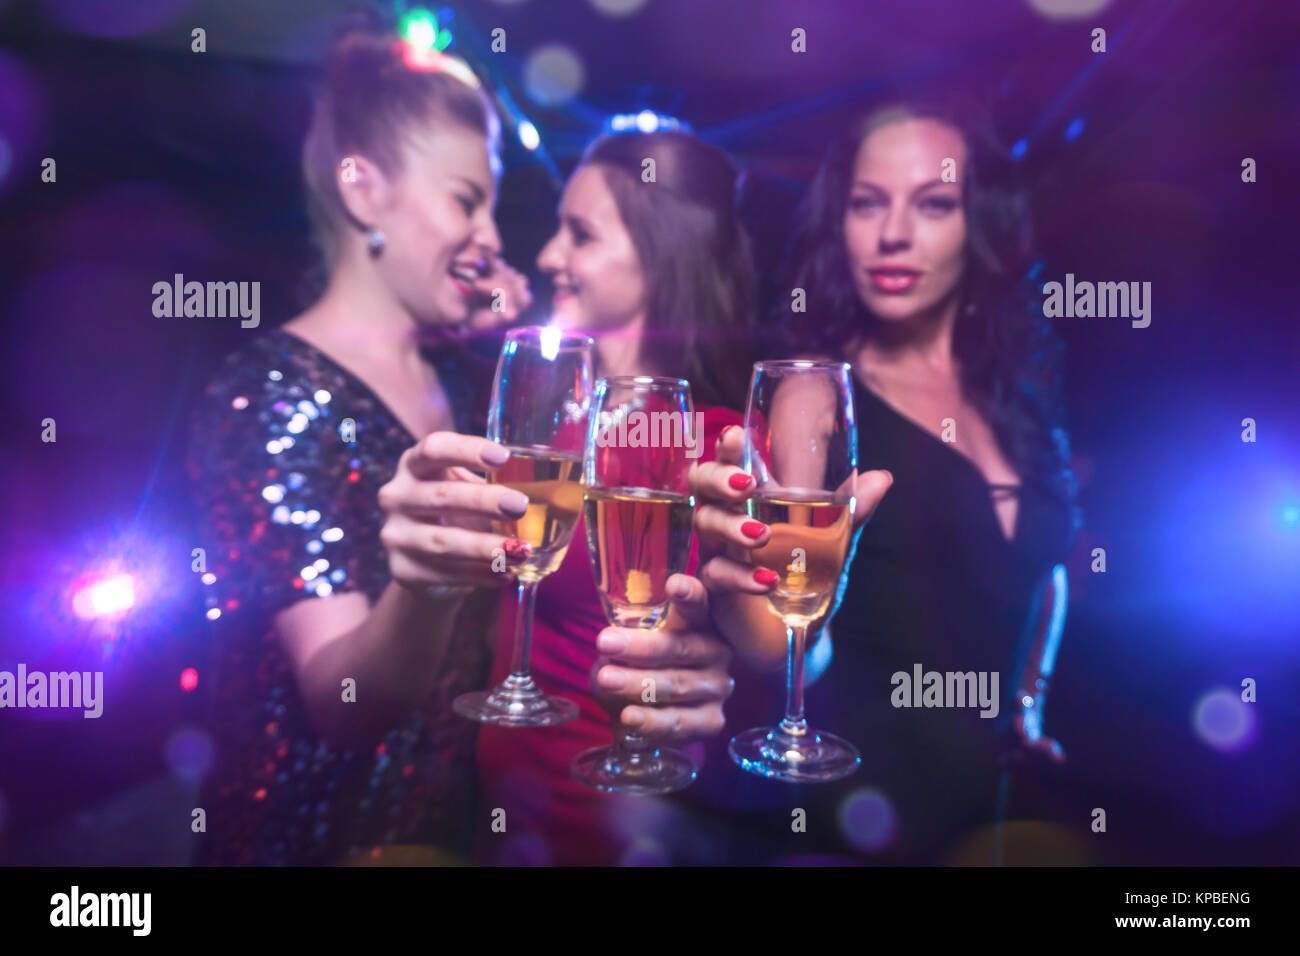 Three women clink glasses with champagne, have fun together on holiday celebration - Stock Image